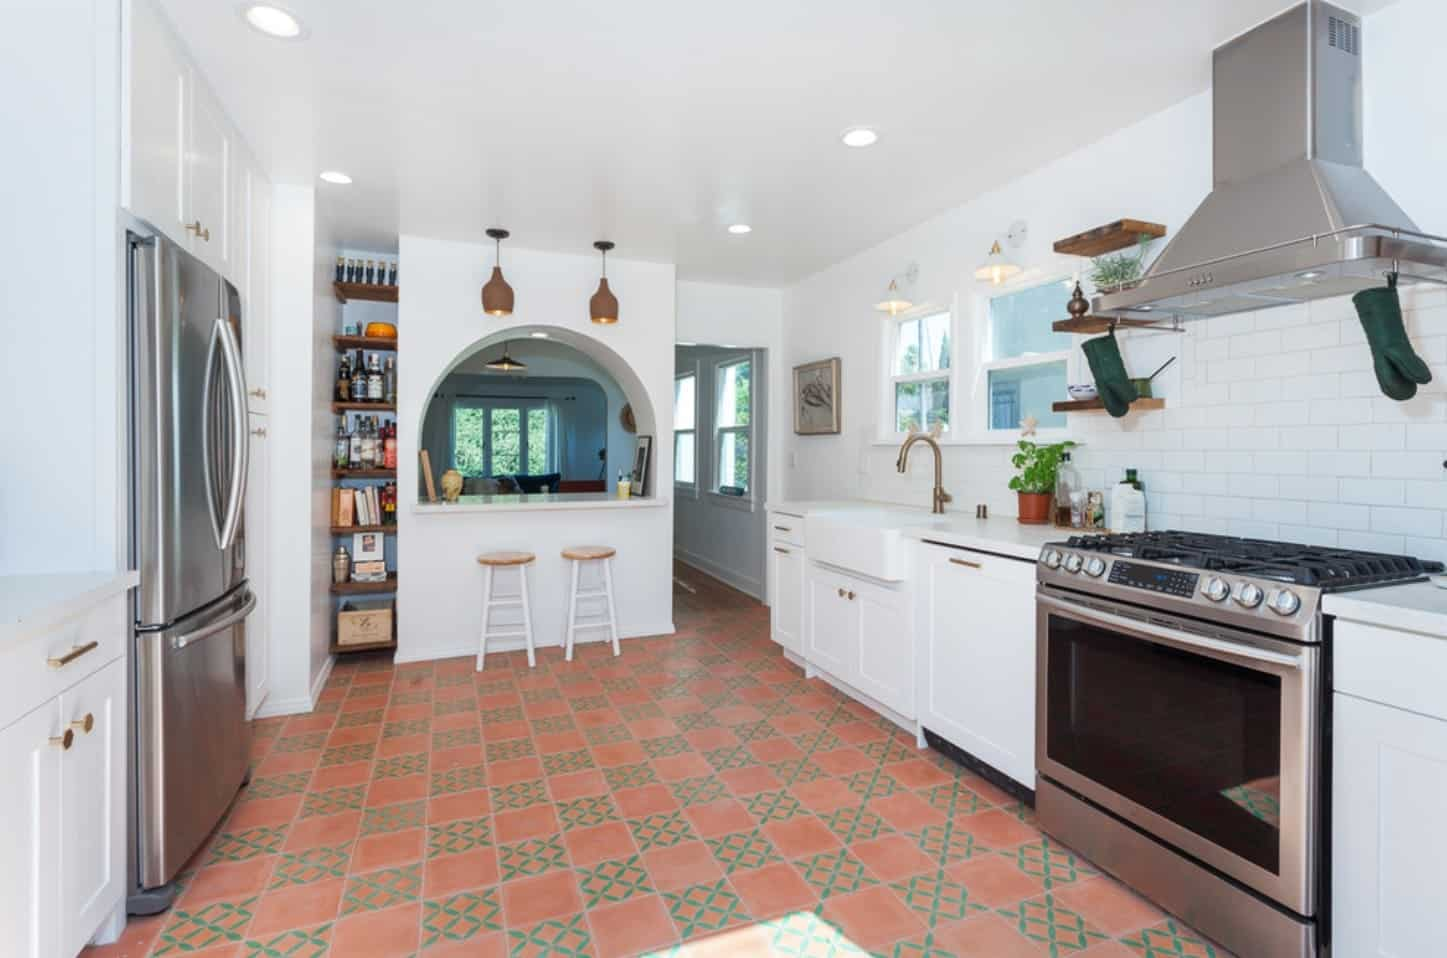 The earthy terracotta flooring tiles have green patterns to it that gives this Spanish-style kitchen a unique flooring that contrasts the bright white cabinetry that houses the stainless steel appliances and the vent hood above stands out against the white ceiling